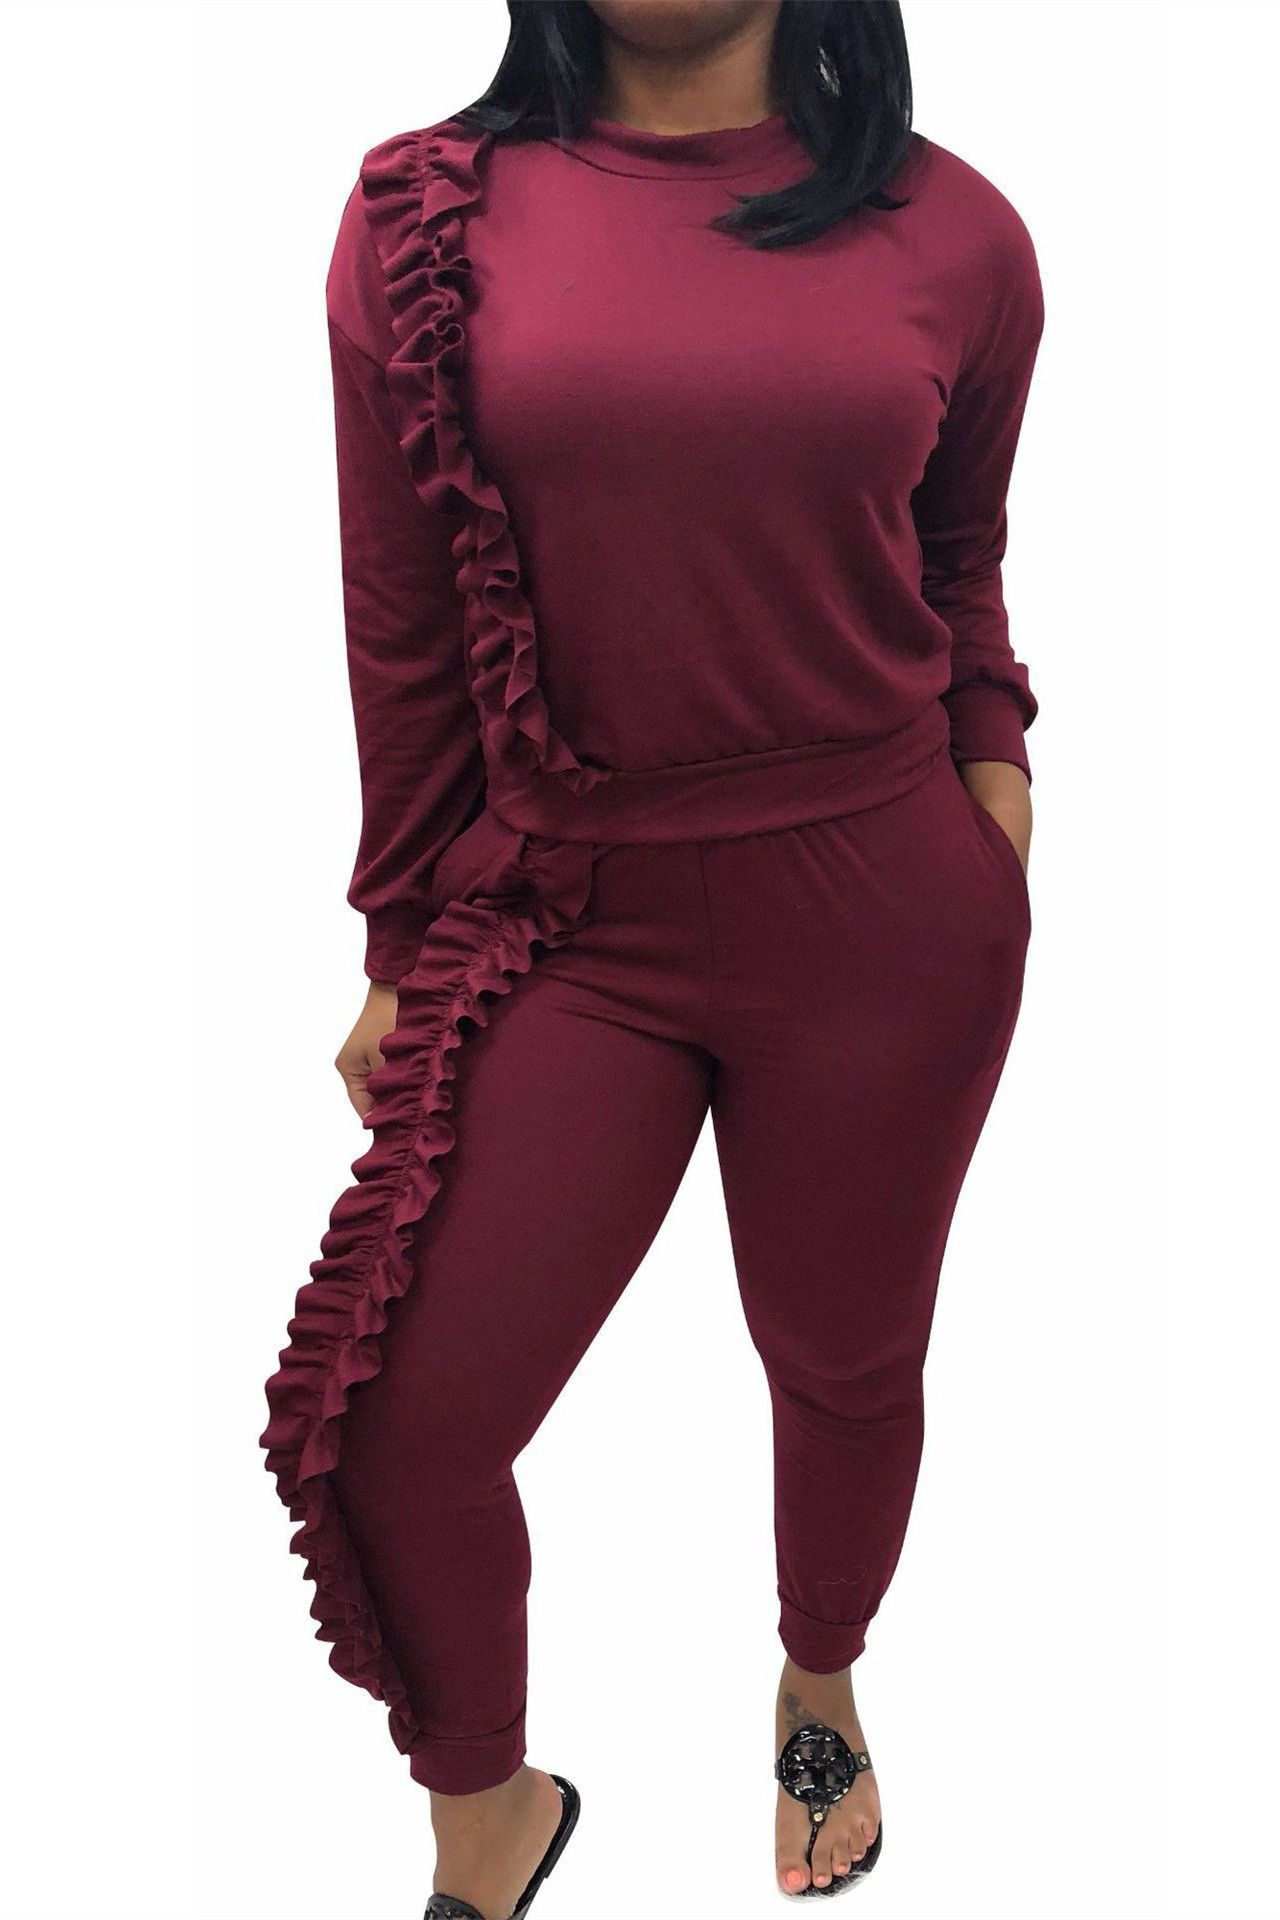 e98ad054a44c Casual Long Sleeve Ruffle Stretch Spring Winter Two Piece Women Jumpsuit